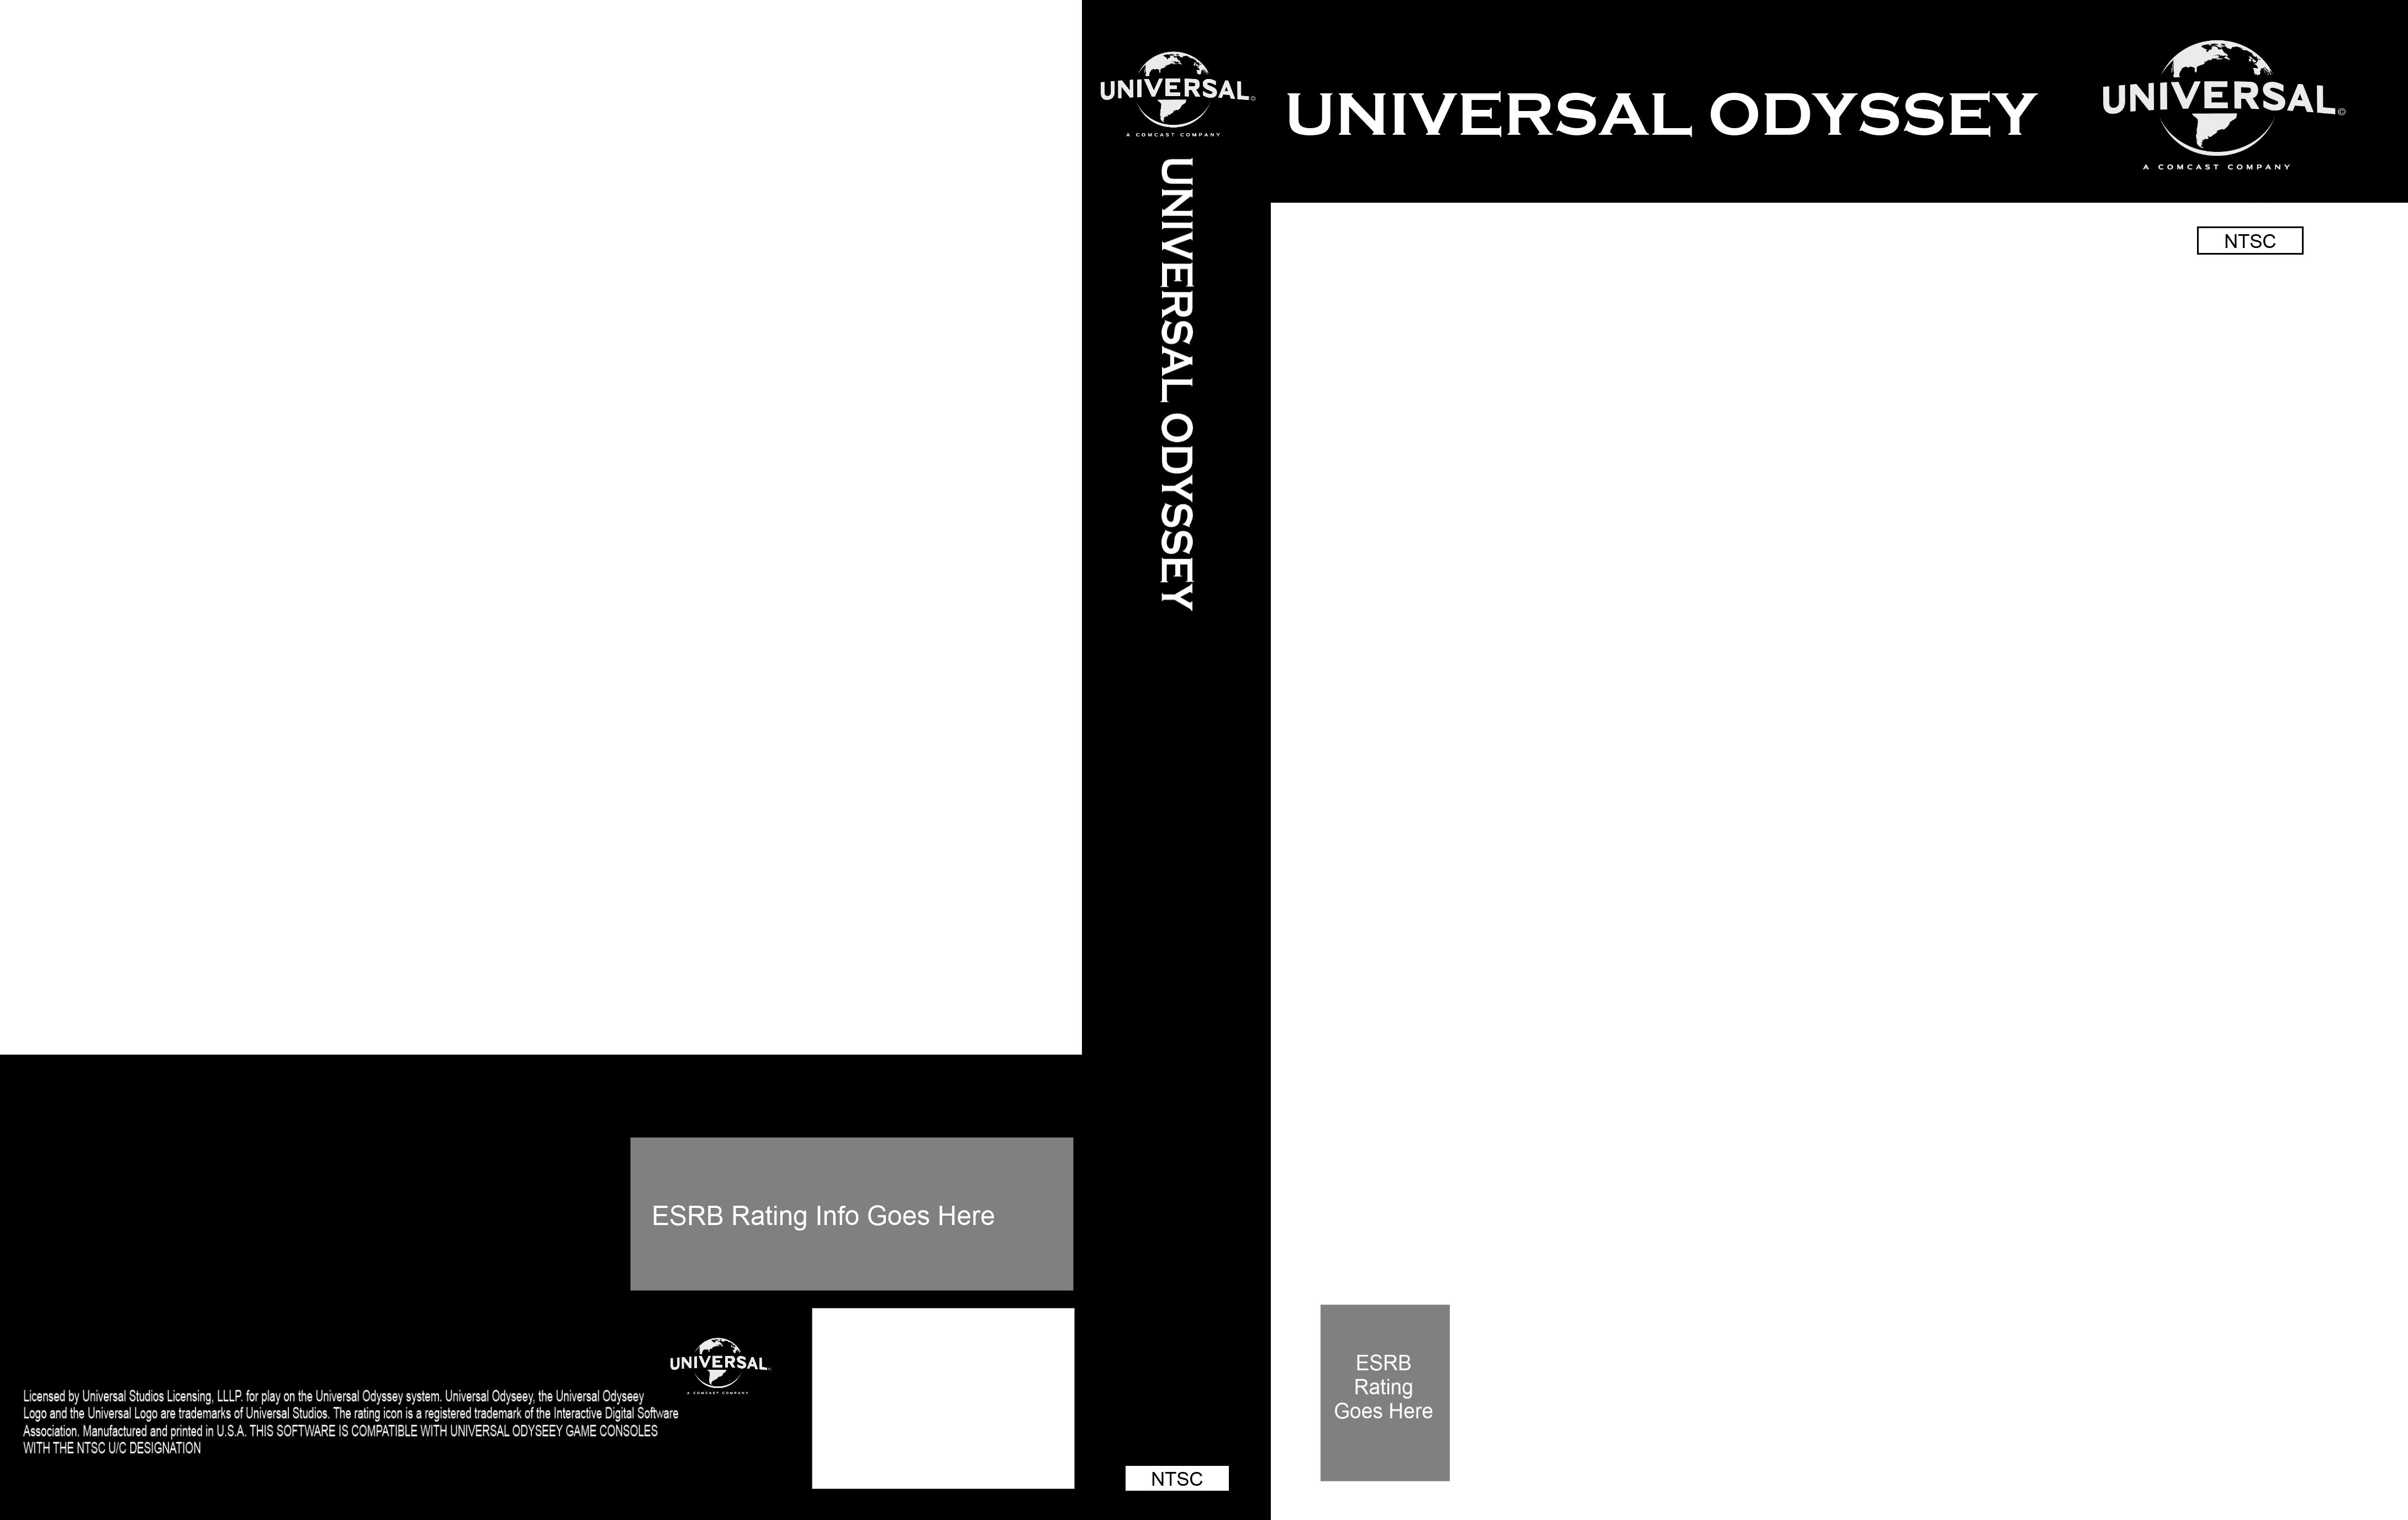 Image Universal Odyssey 2012 present Game Cover Template